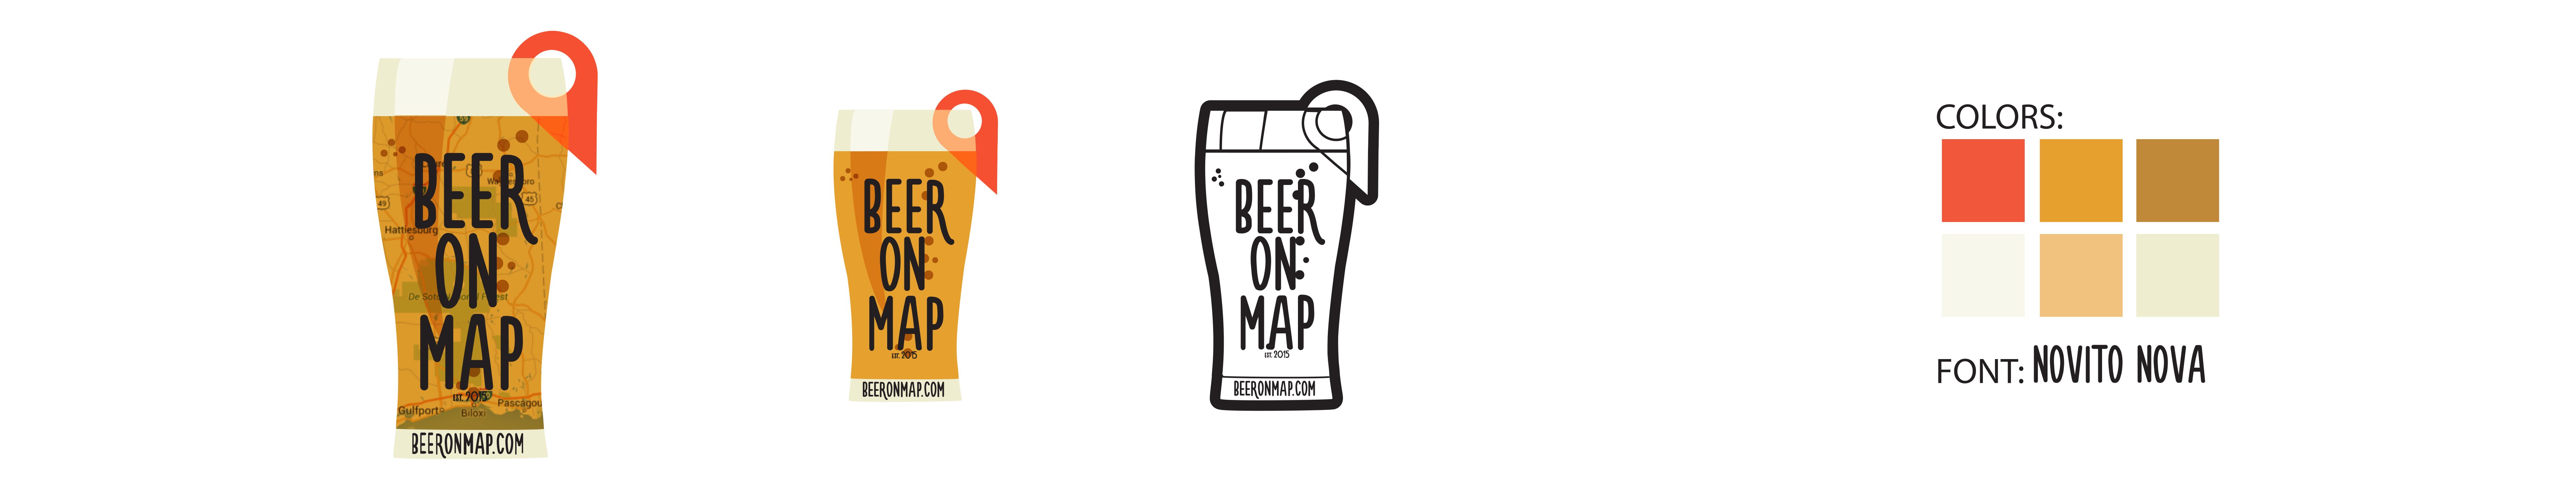 Beer on Map logo designs